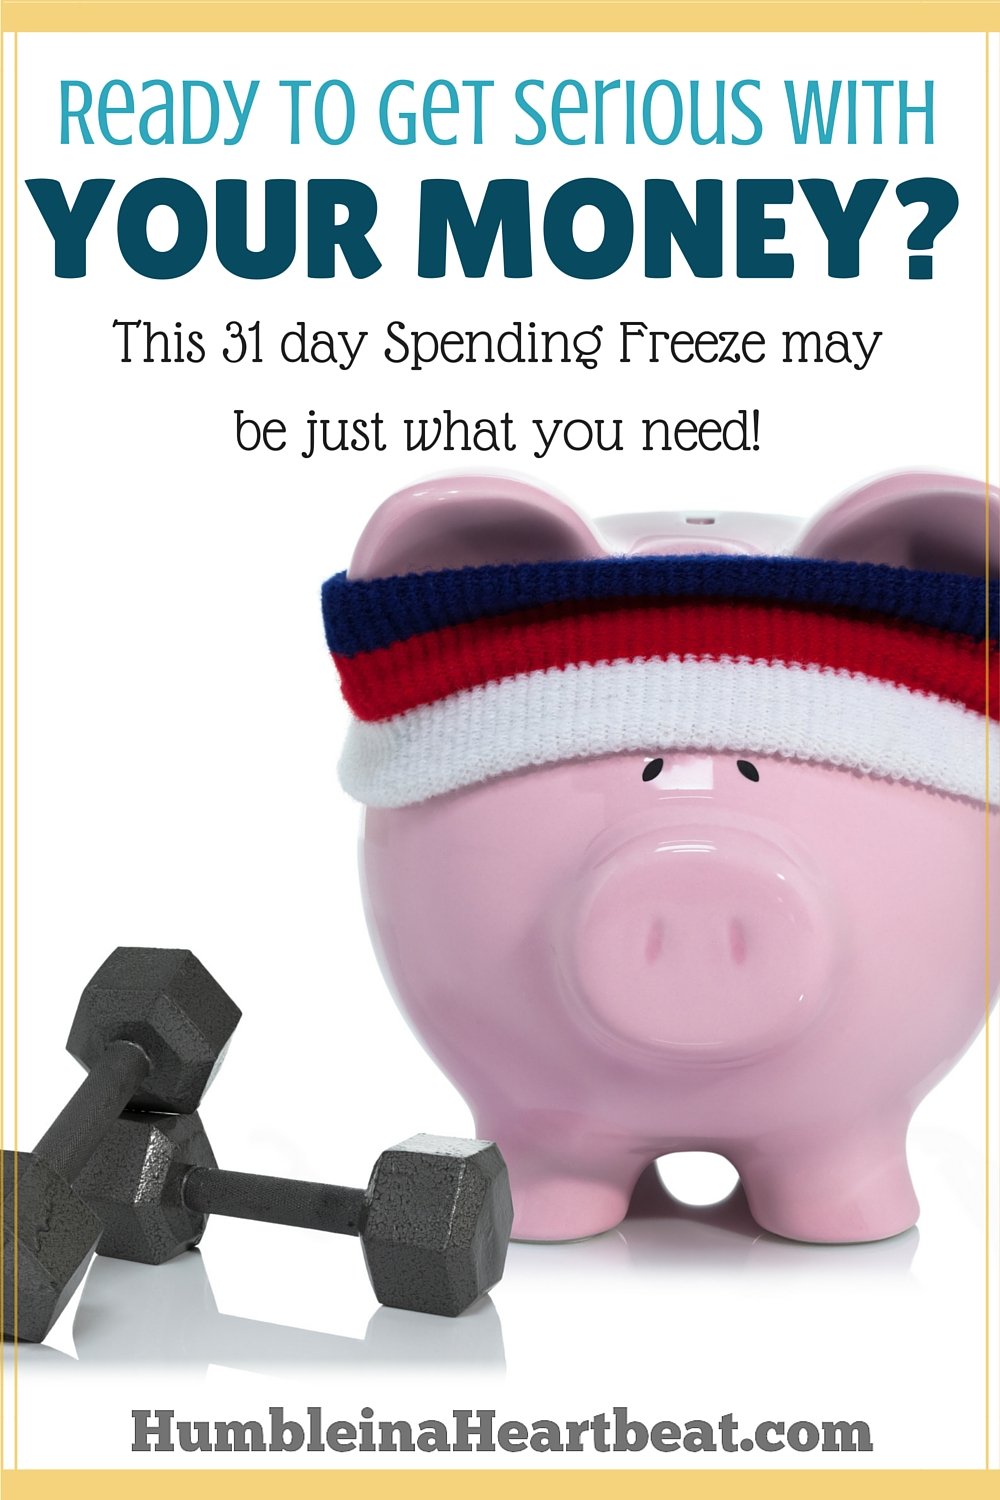 Whether you need to save more money, get out of debt, or spend less, this spending freeze challenge is a great way to whip your finances into shape!